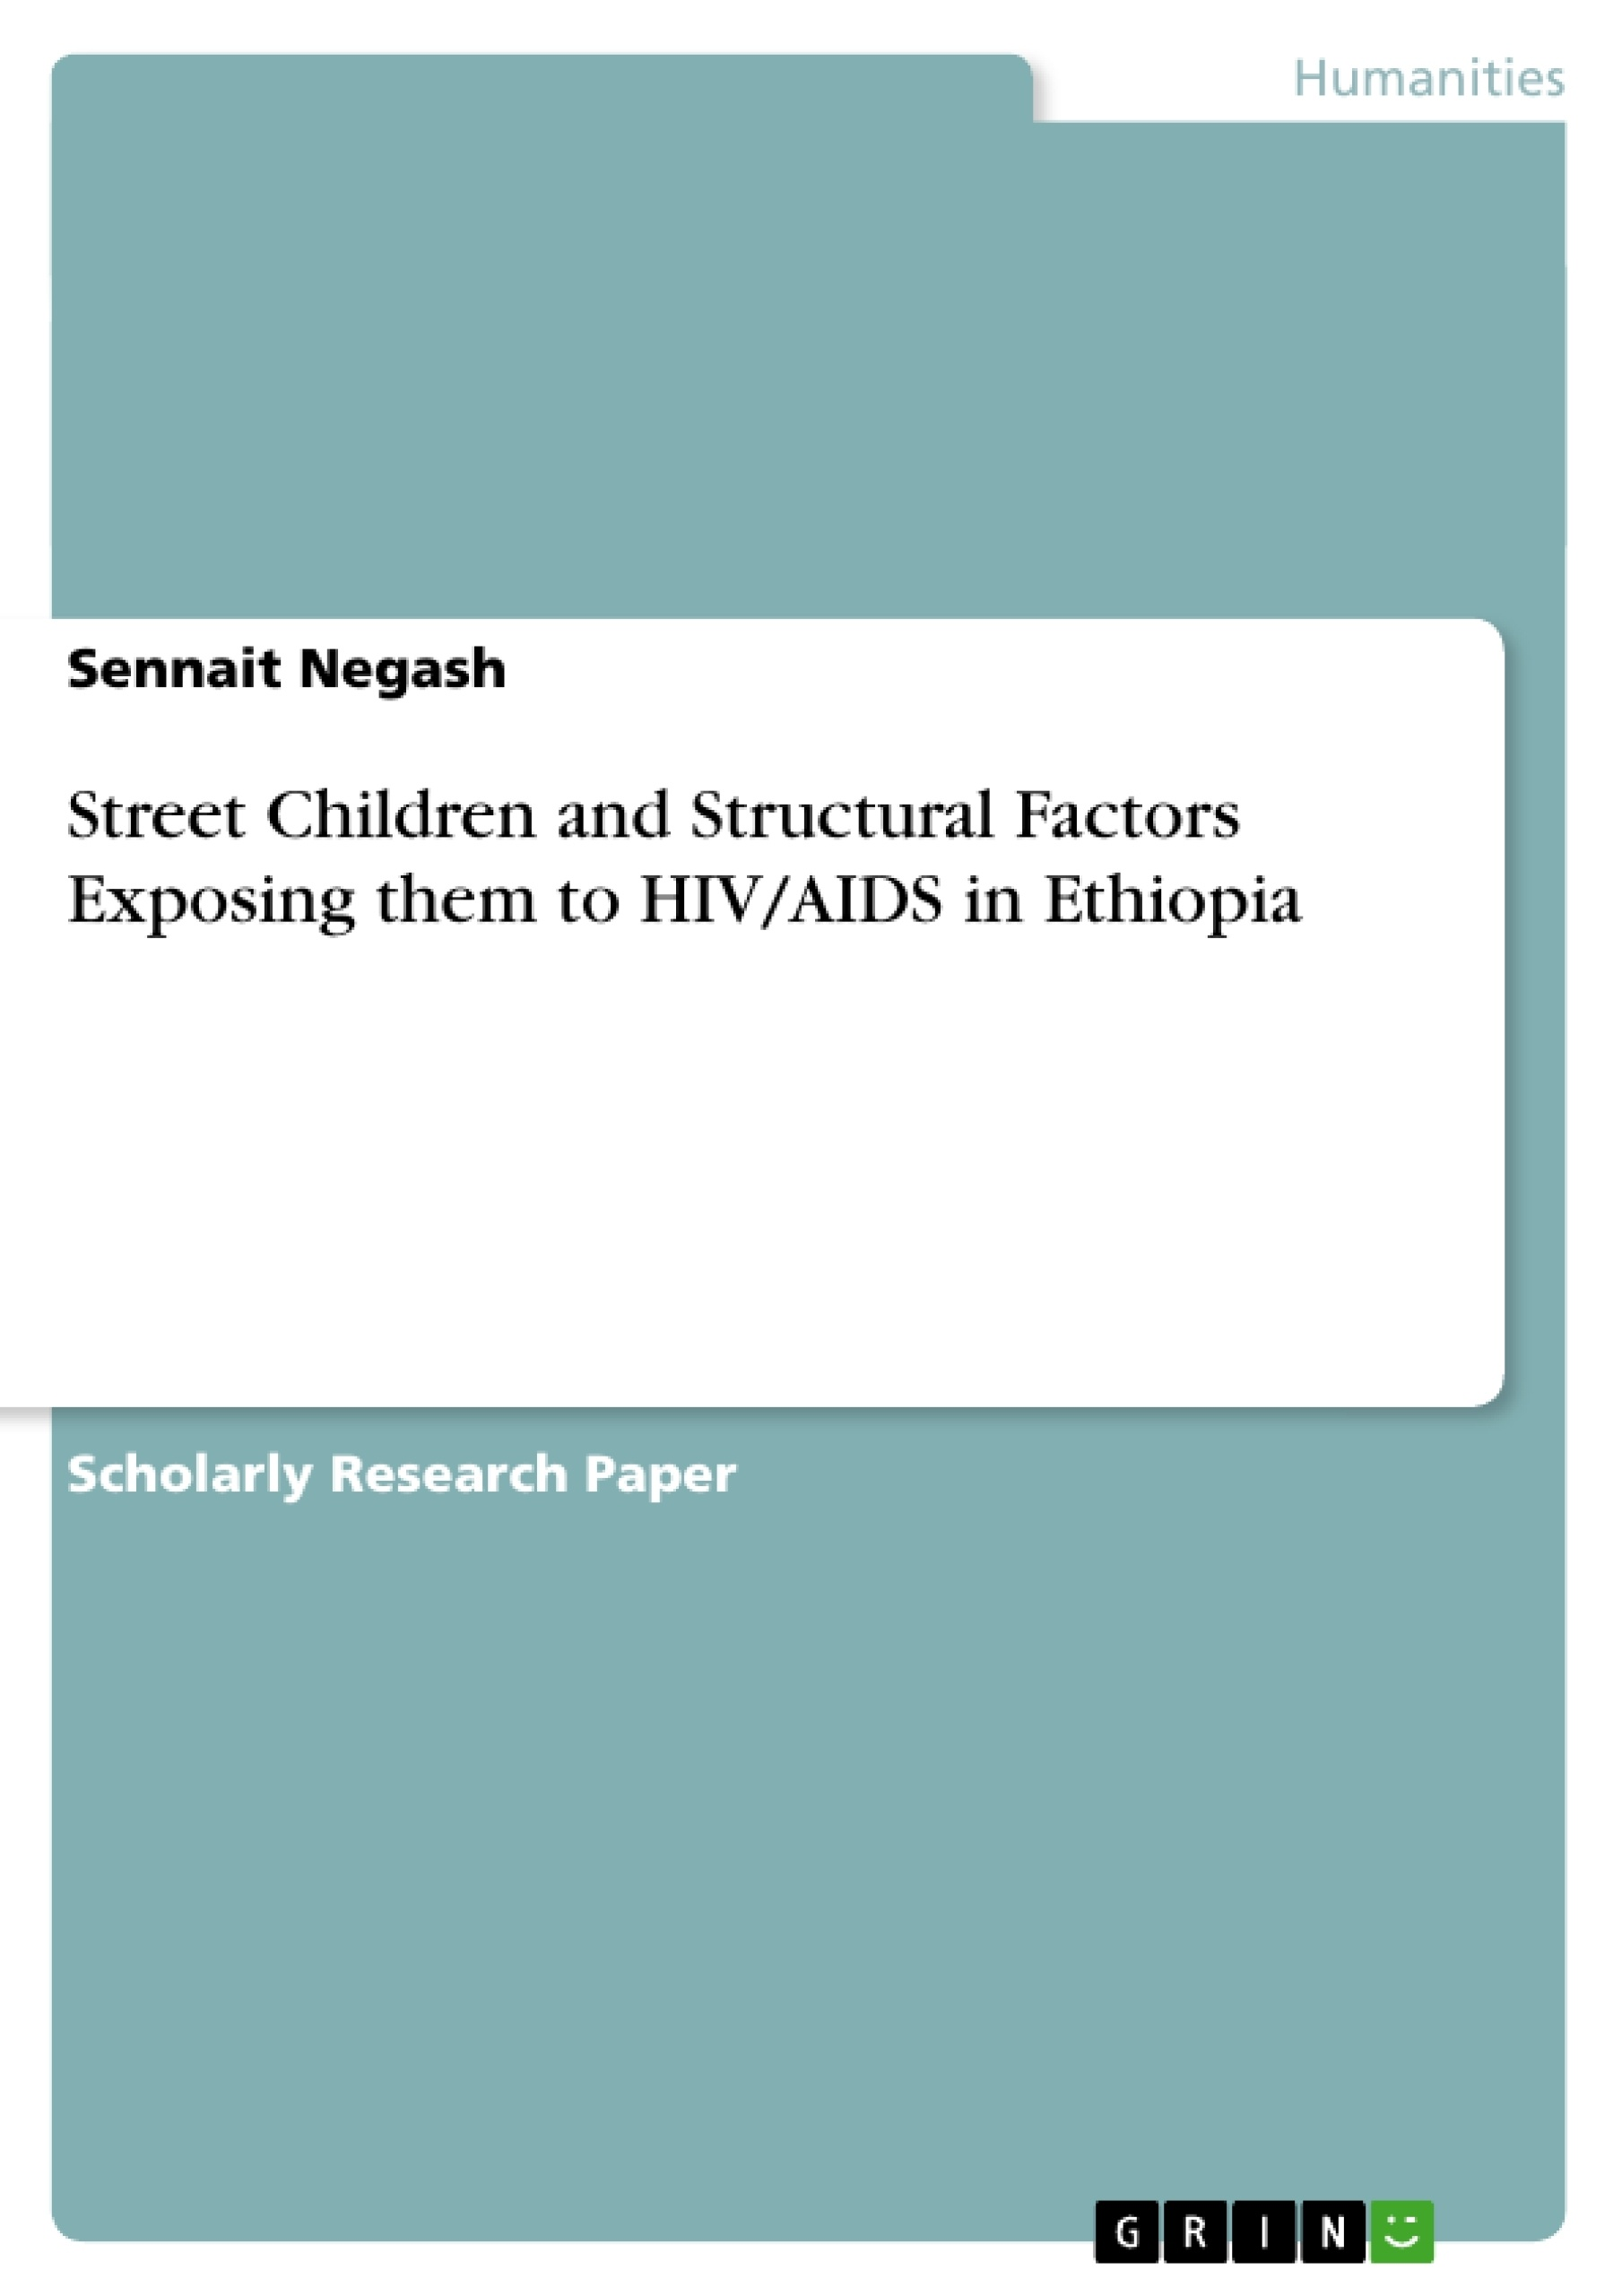 Title: Street Children and Structural Factors Exposing them to HIV/AIDS in Ethiopia